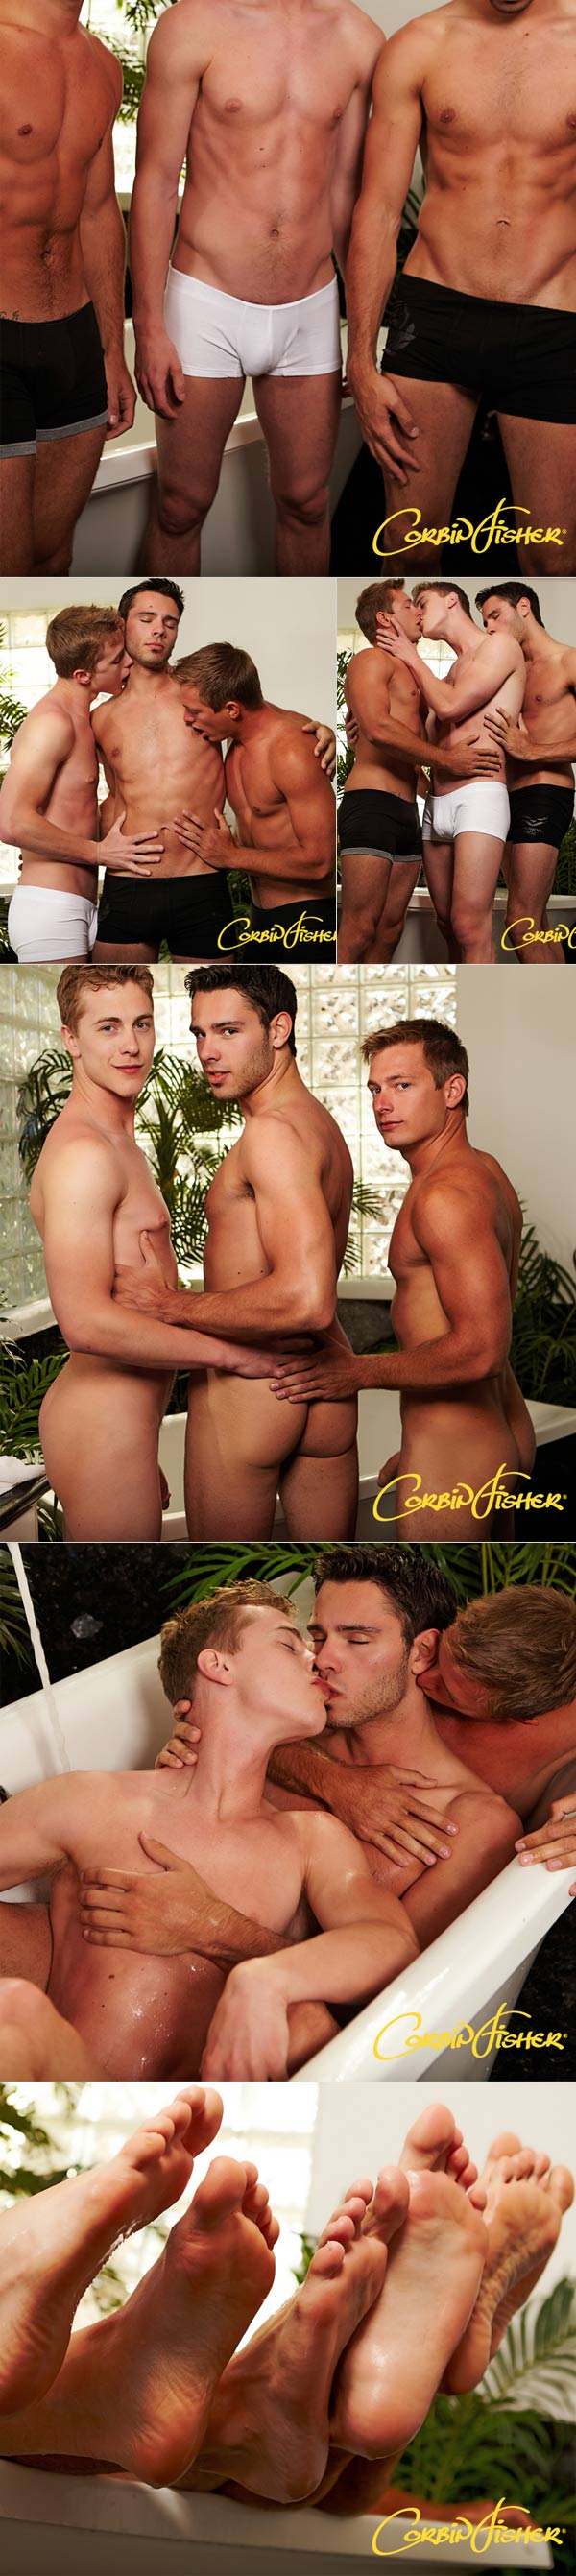 Dru & Martin Tag Trey at CorbinFisher